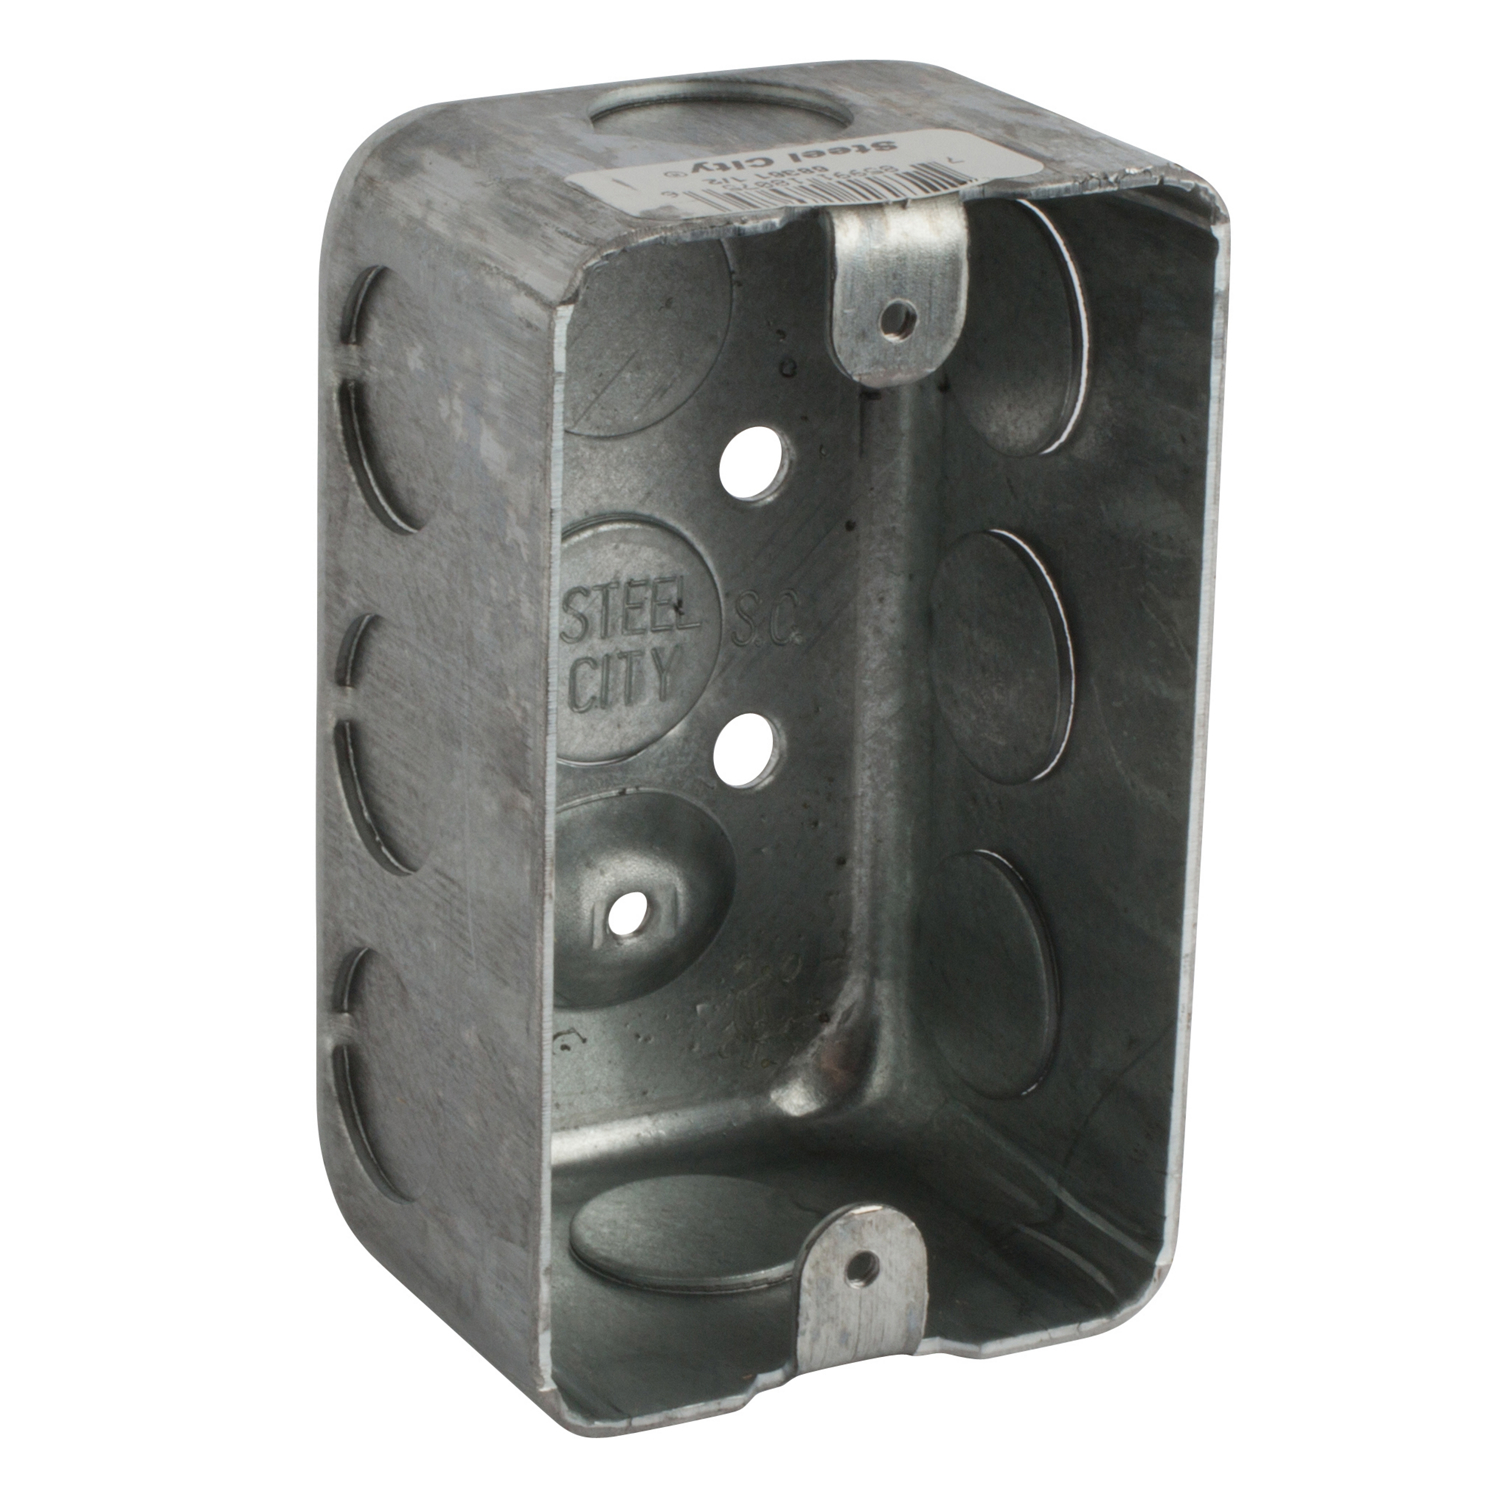 Steel City reg; Utility Handy Box, 1 Gang, 6 Knockouts, 1 #047;2 in Knockout, Knockout Cable Entry, Threaded Mount, 17 cu-in, Steel, Pre-Galvanized, 4-1 #047;8 in L x 2-1 #047;2 in W x 1-15 #047;16 in D